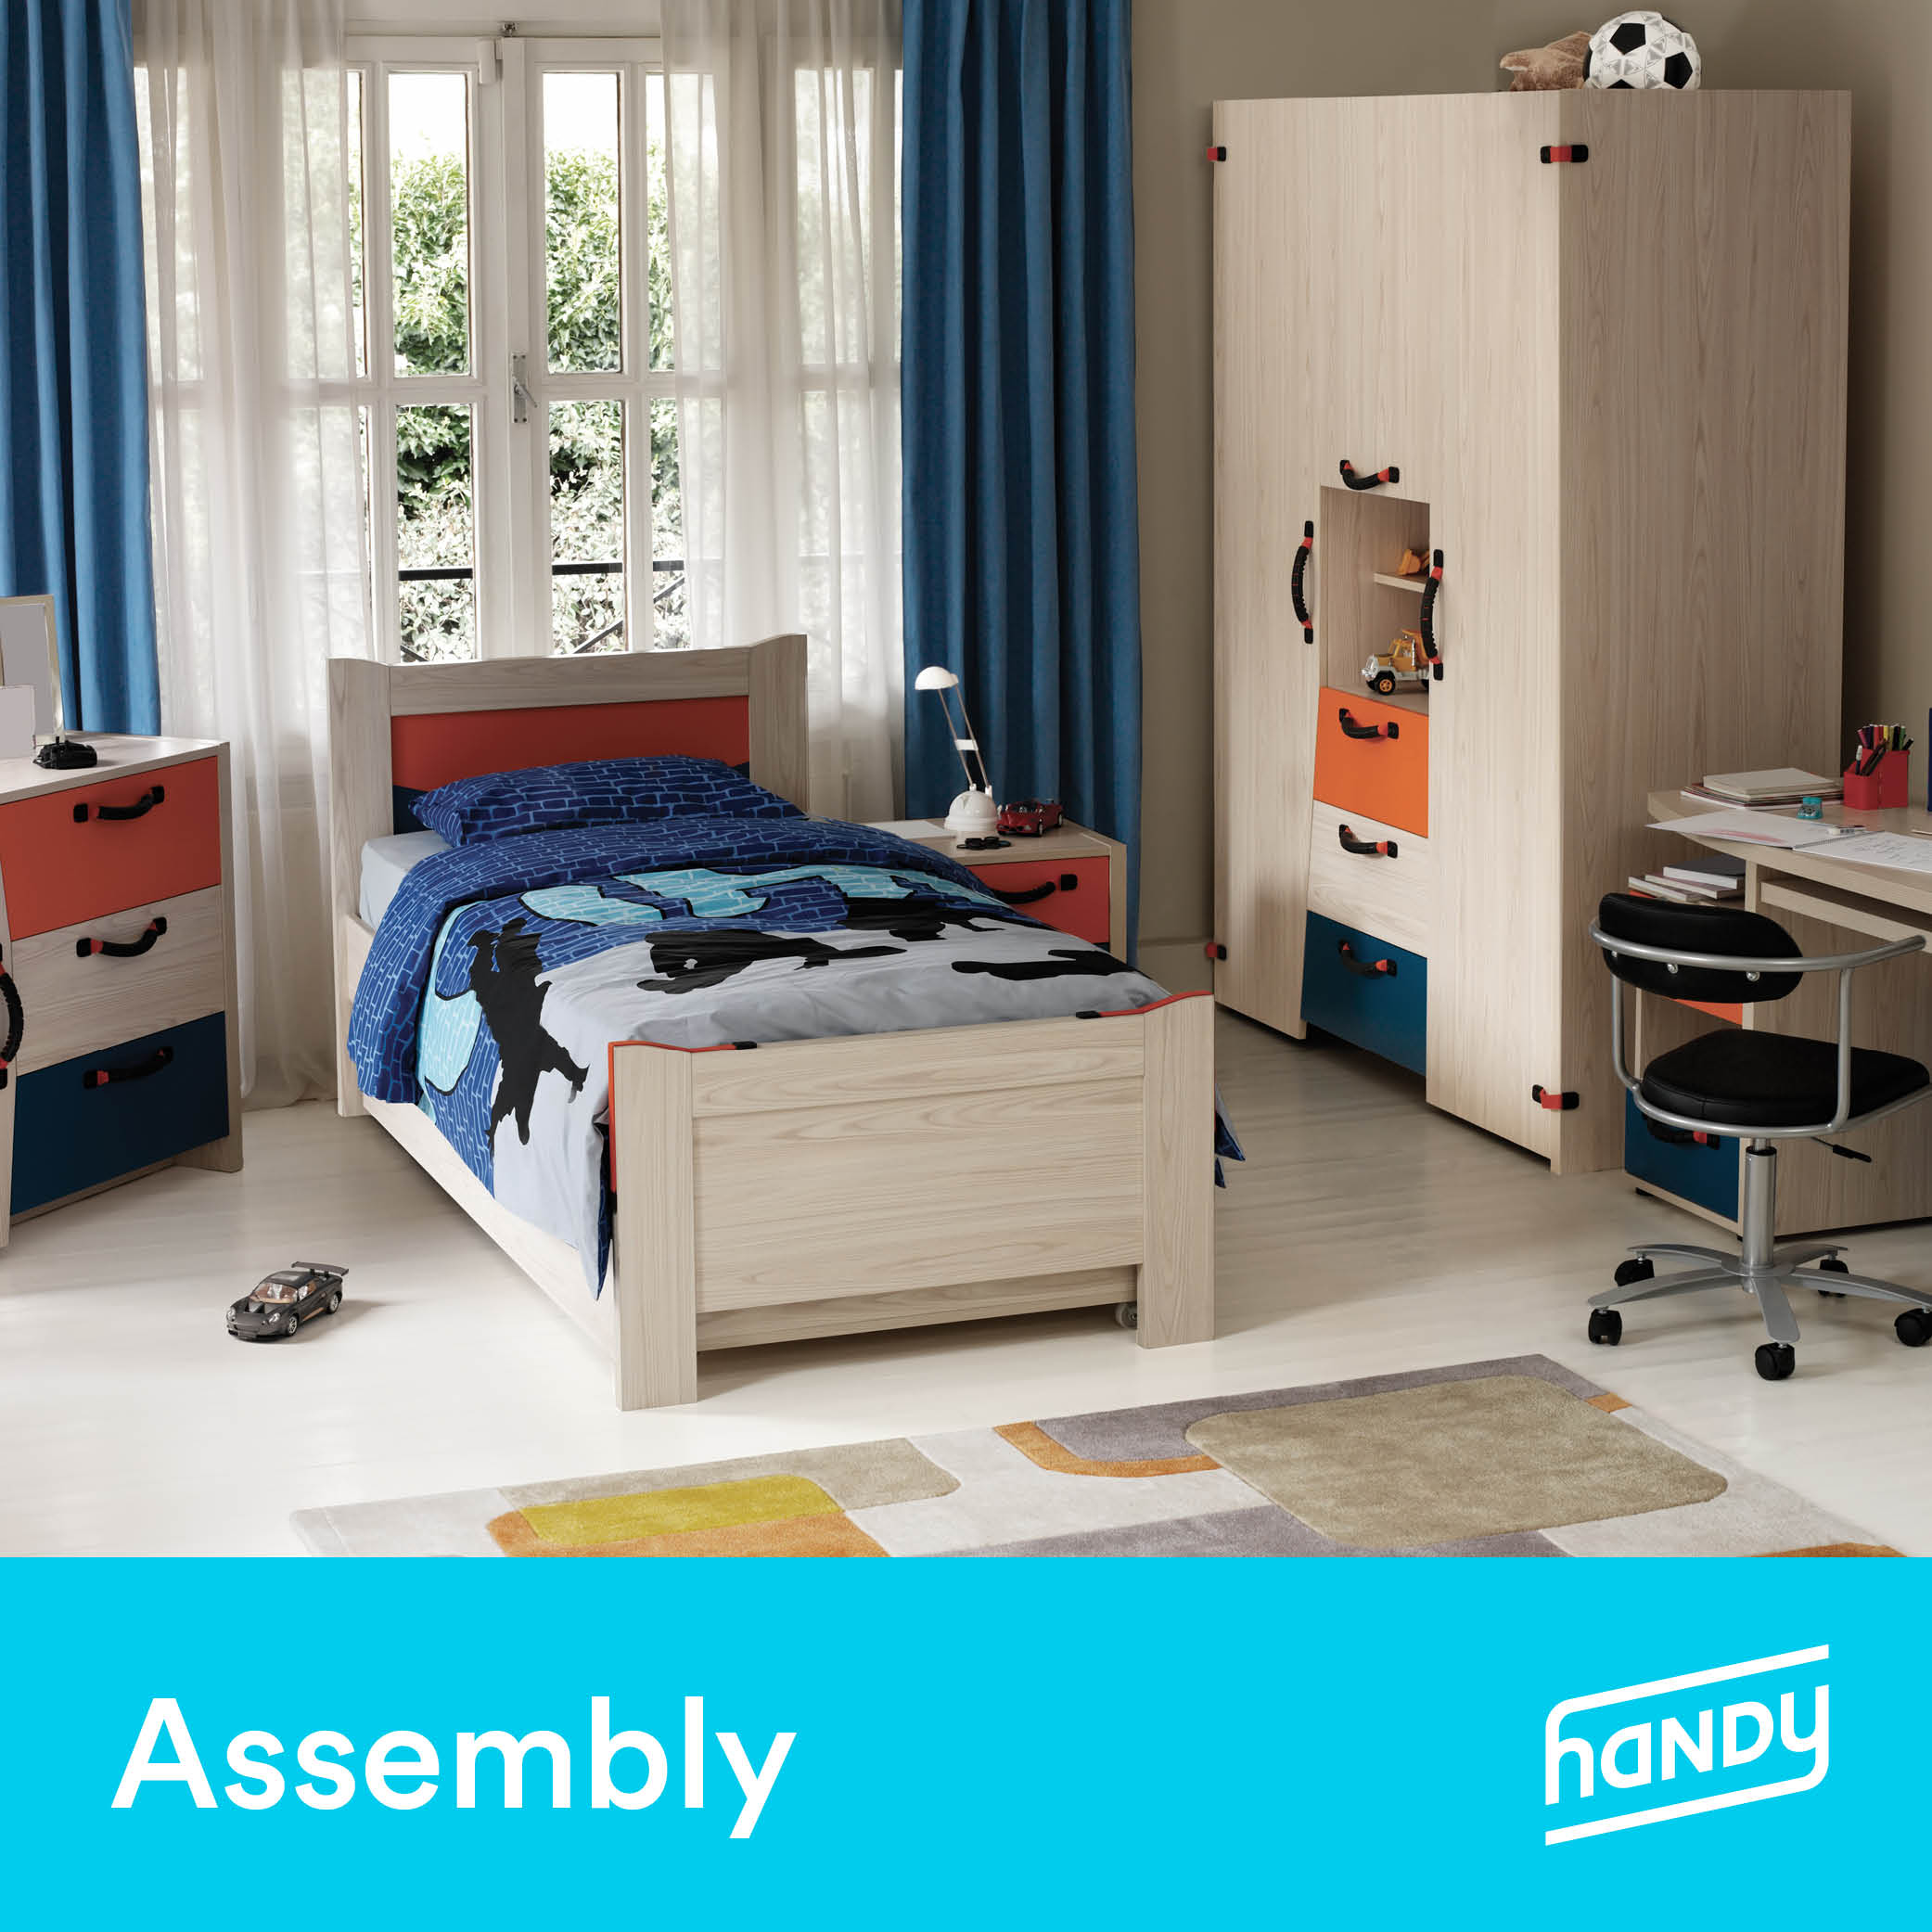 Kids' Bedroom Set Assembly by Handy